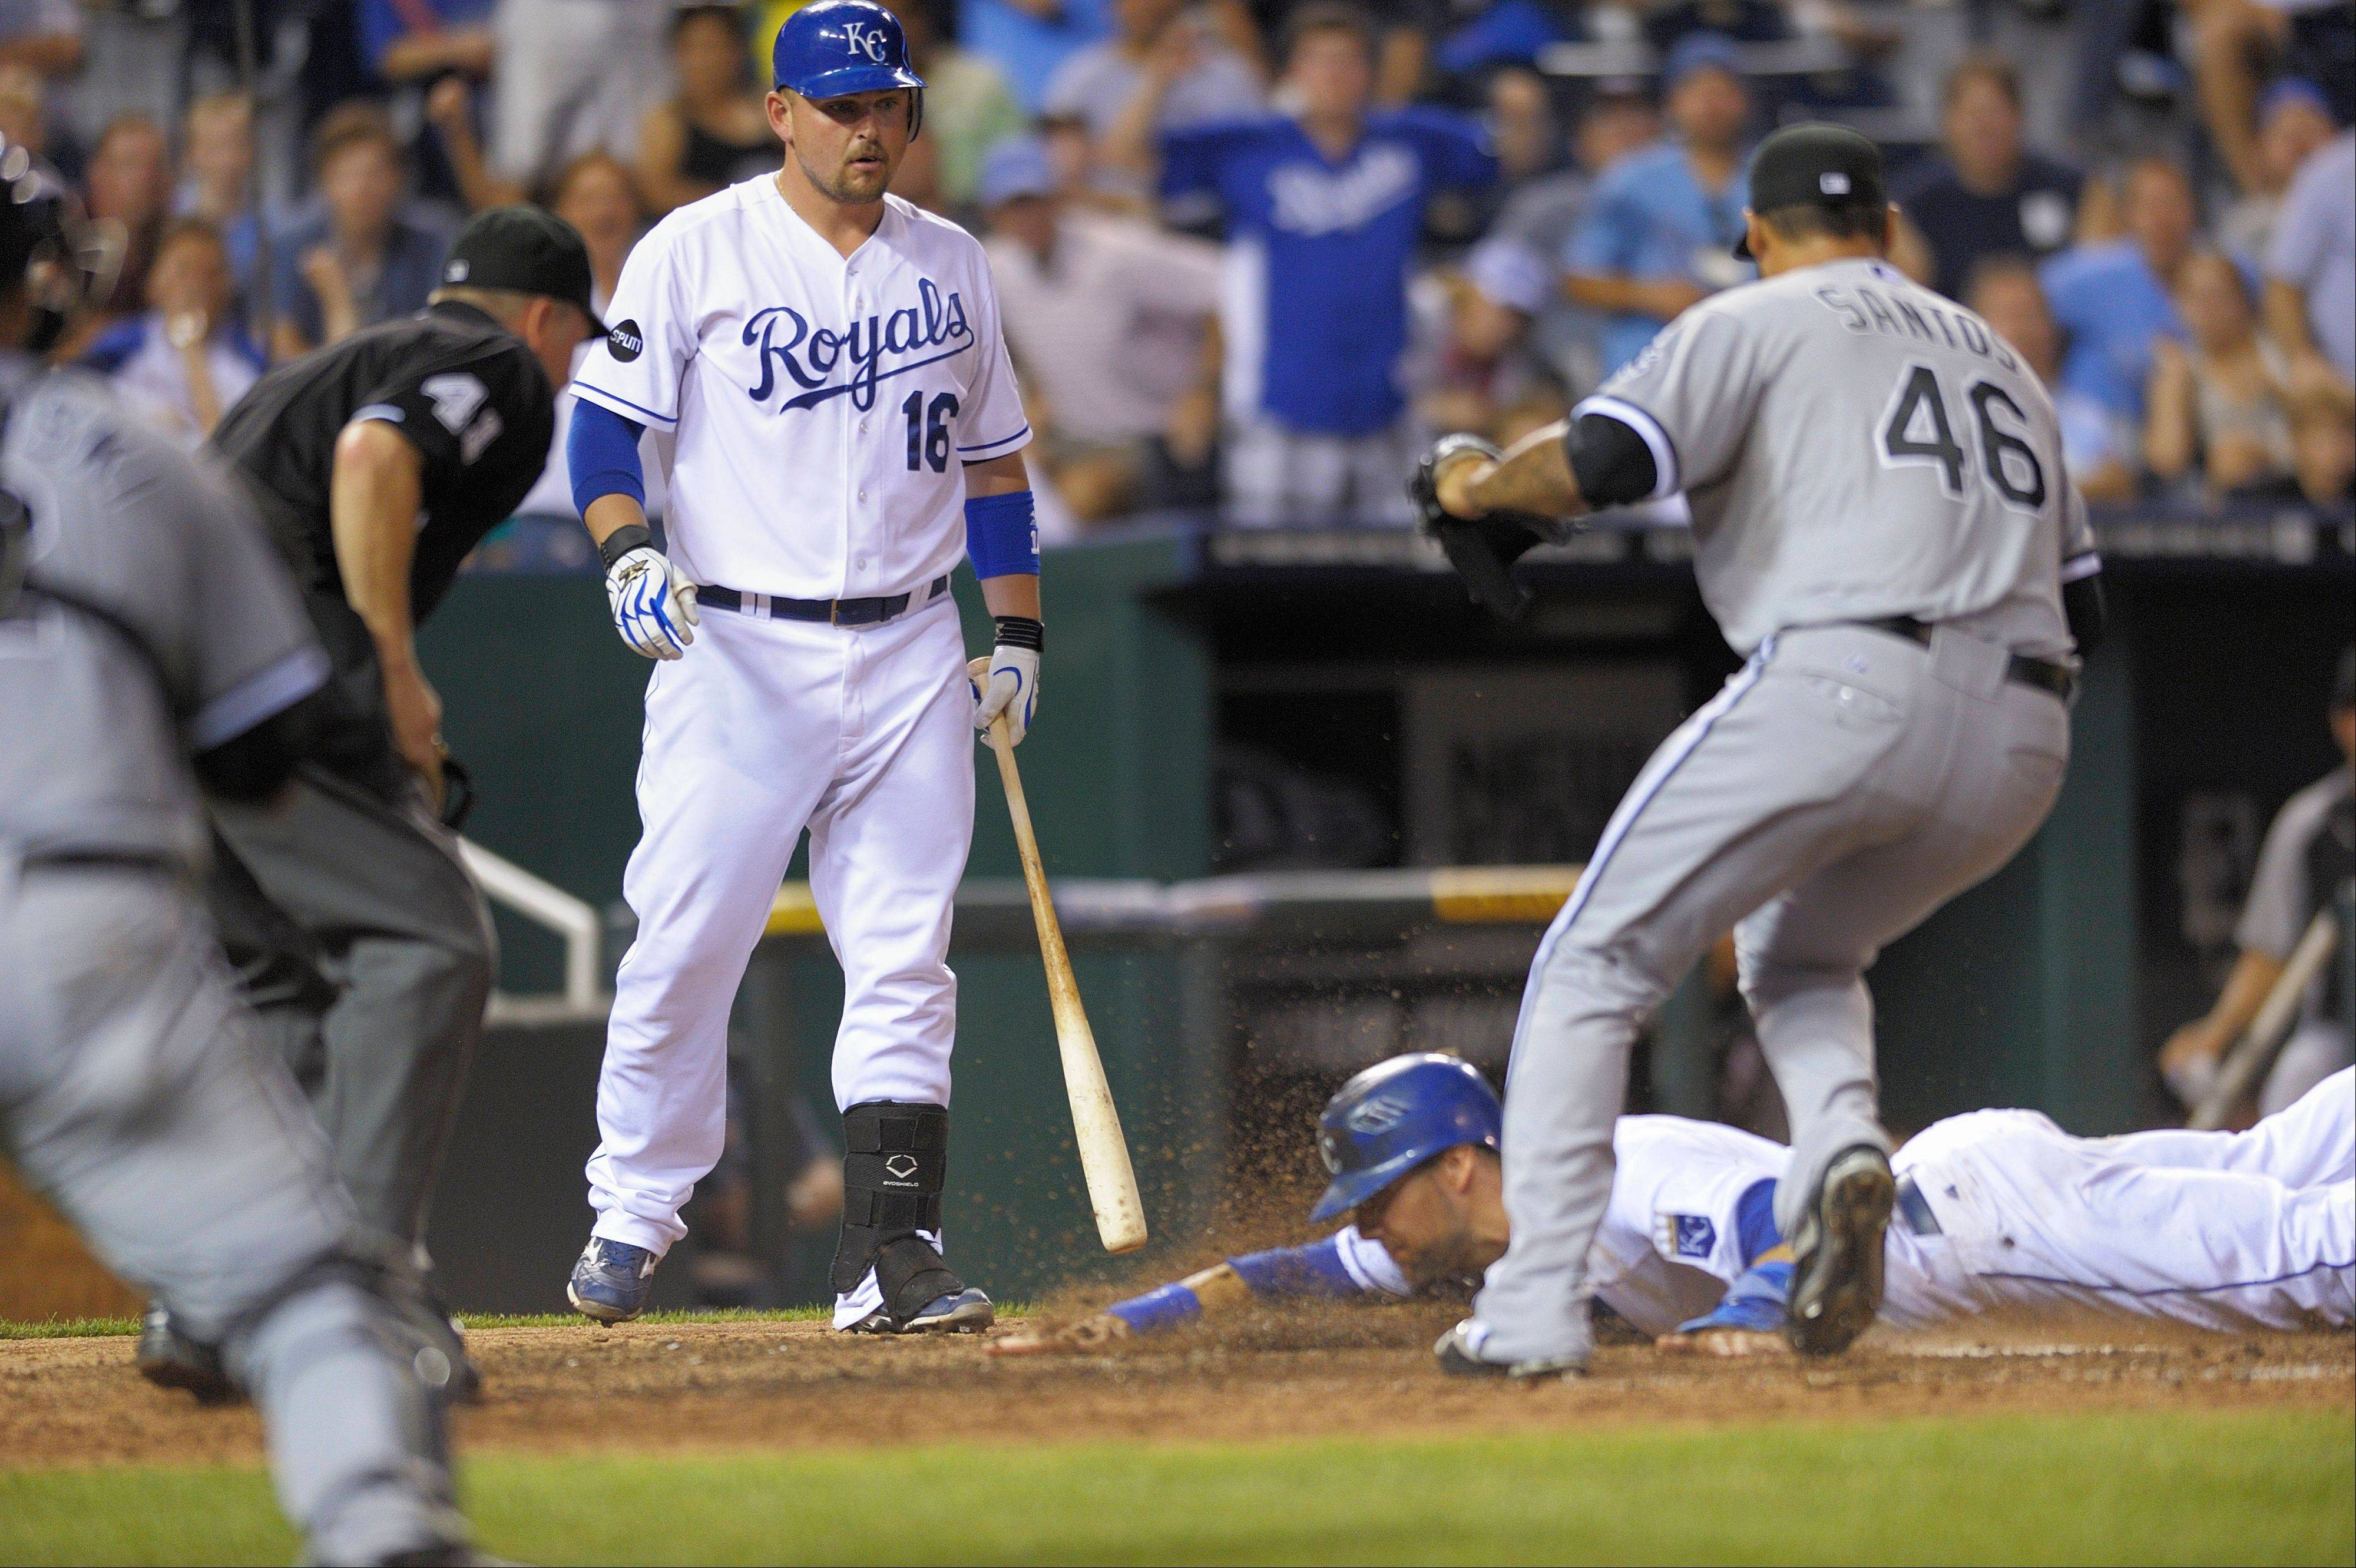 Guillen erupts after tough loss to Royals